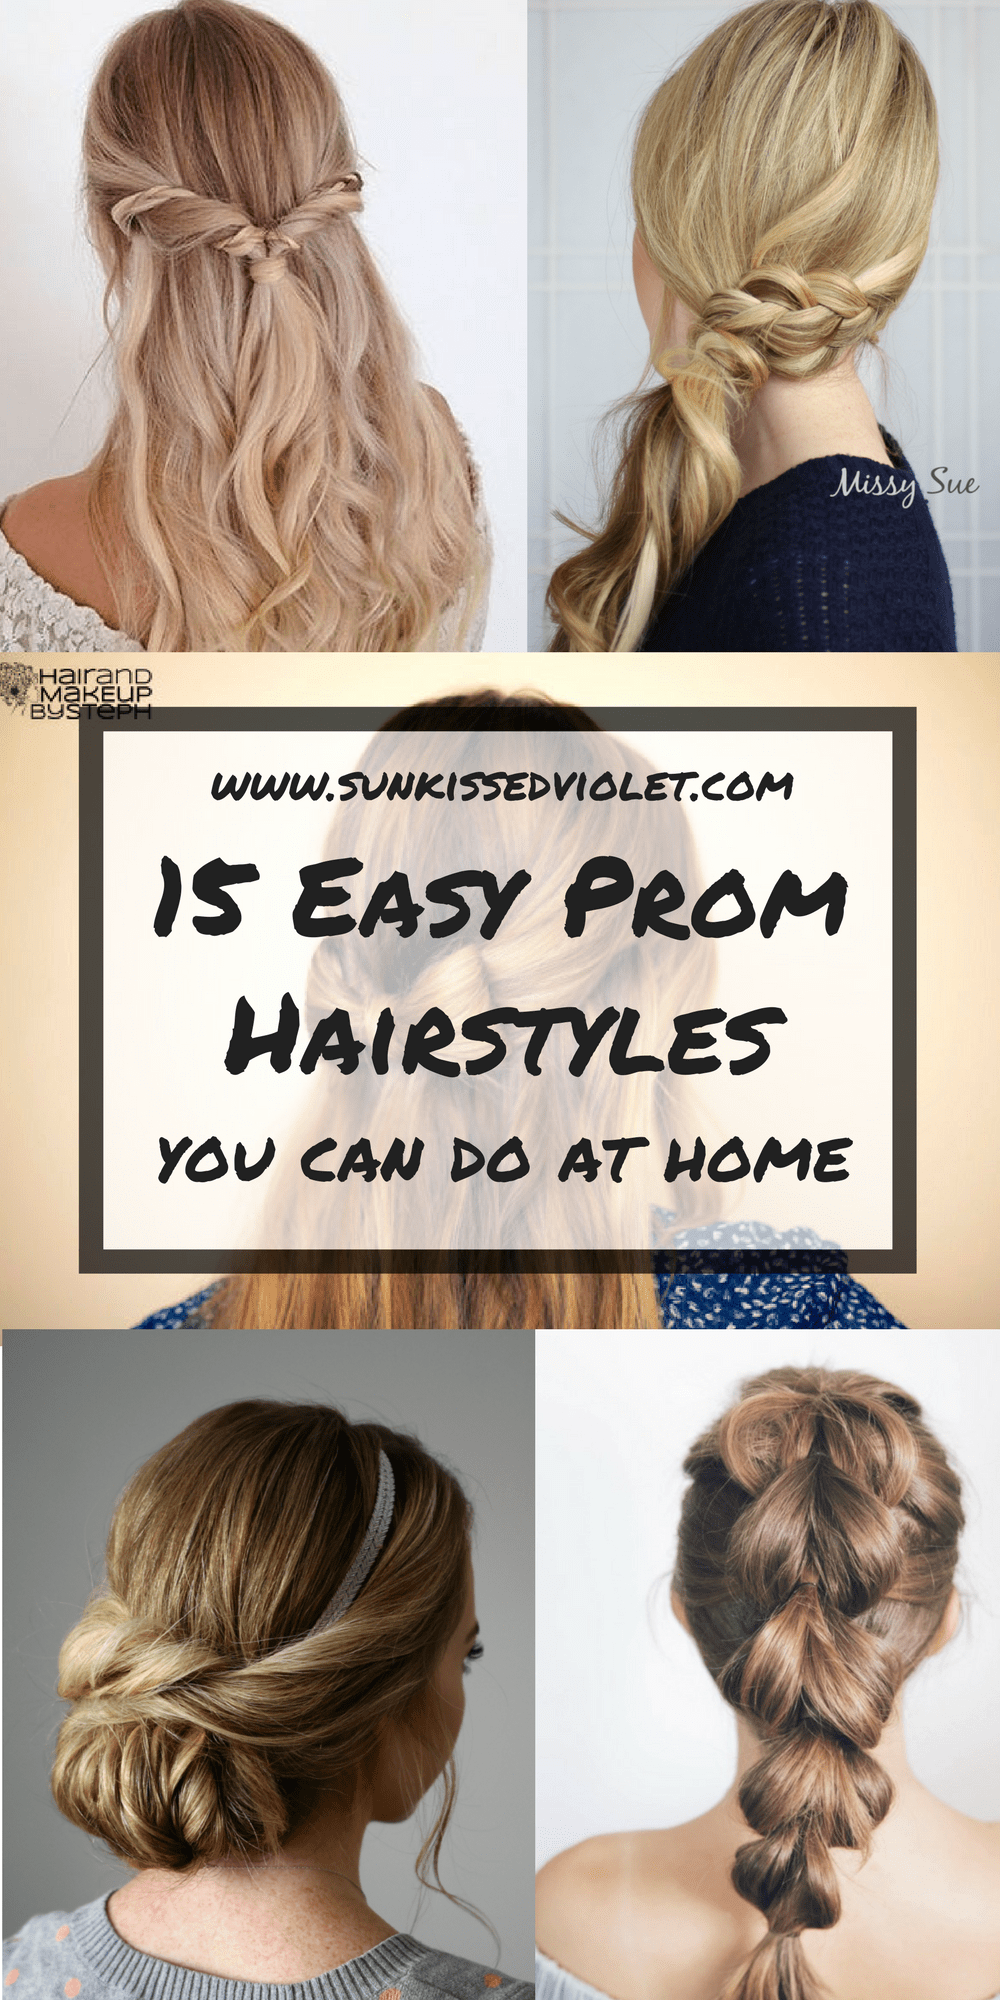 10 Easy Hairstyles For Long Hair To Do At Home Step By Step Hey Cinderella Einfachefrisuren Easyhairstylesfo Office Hairstyles Long Hair Styles Hair Styles